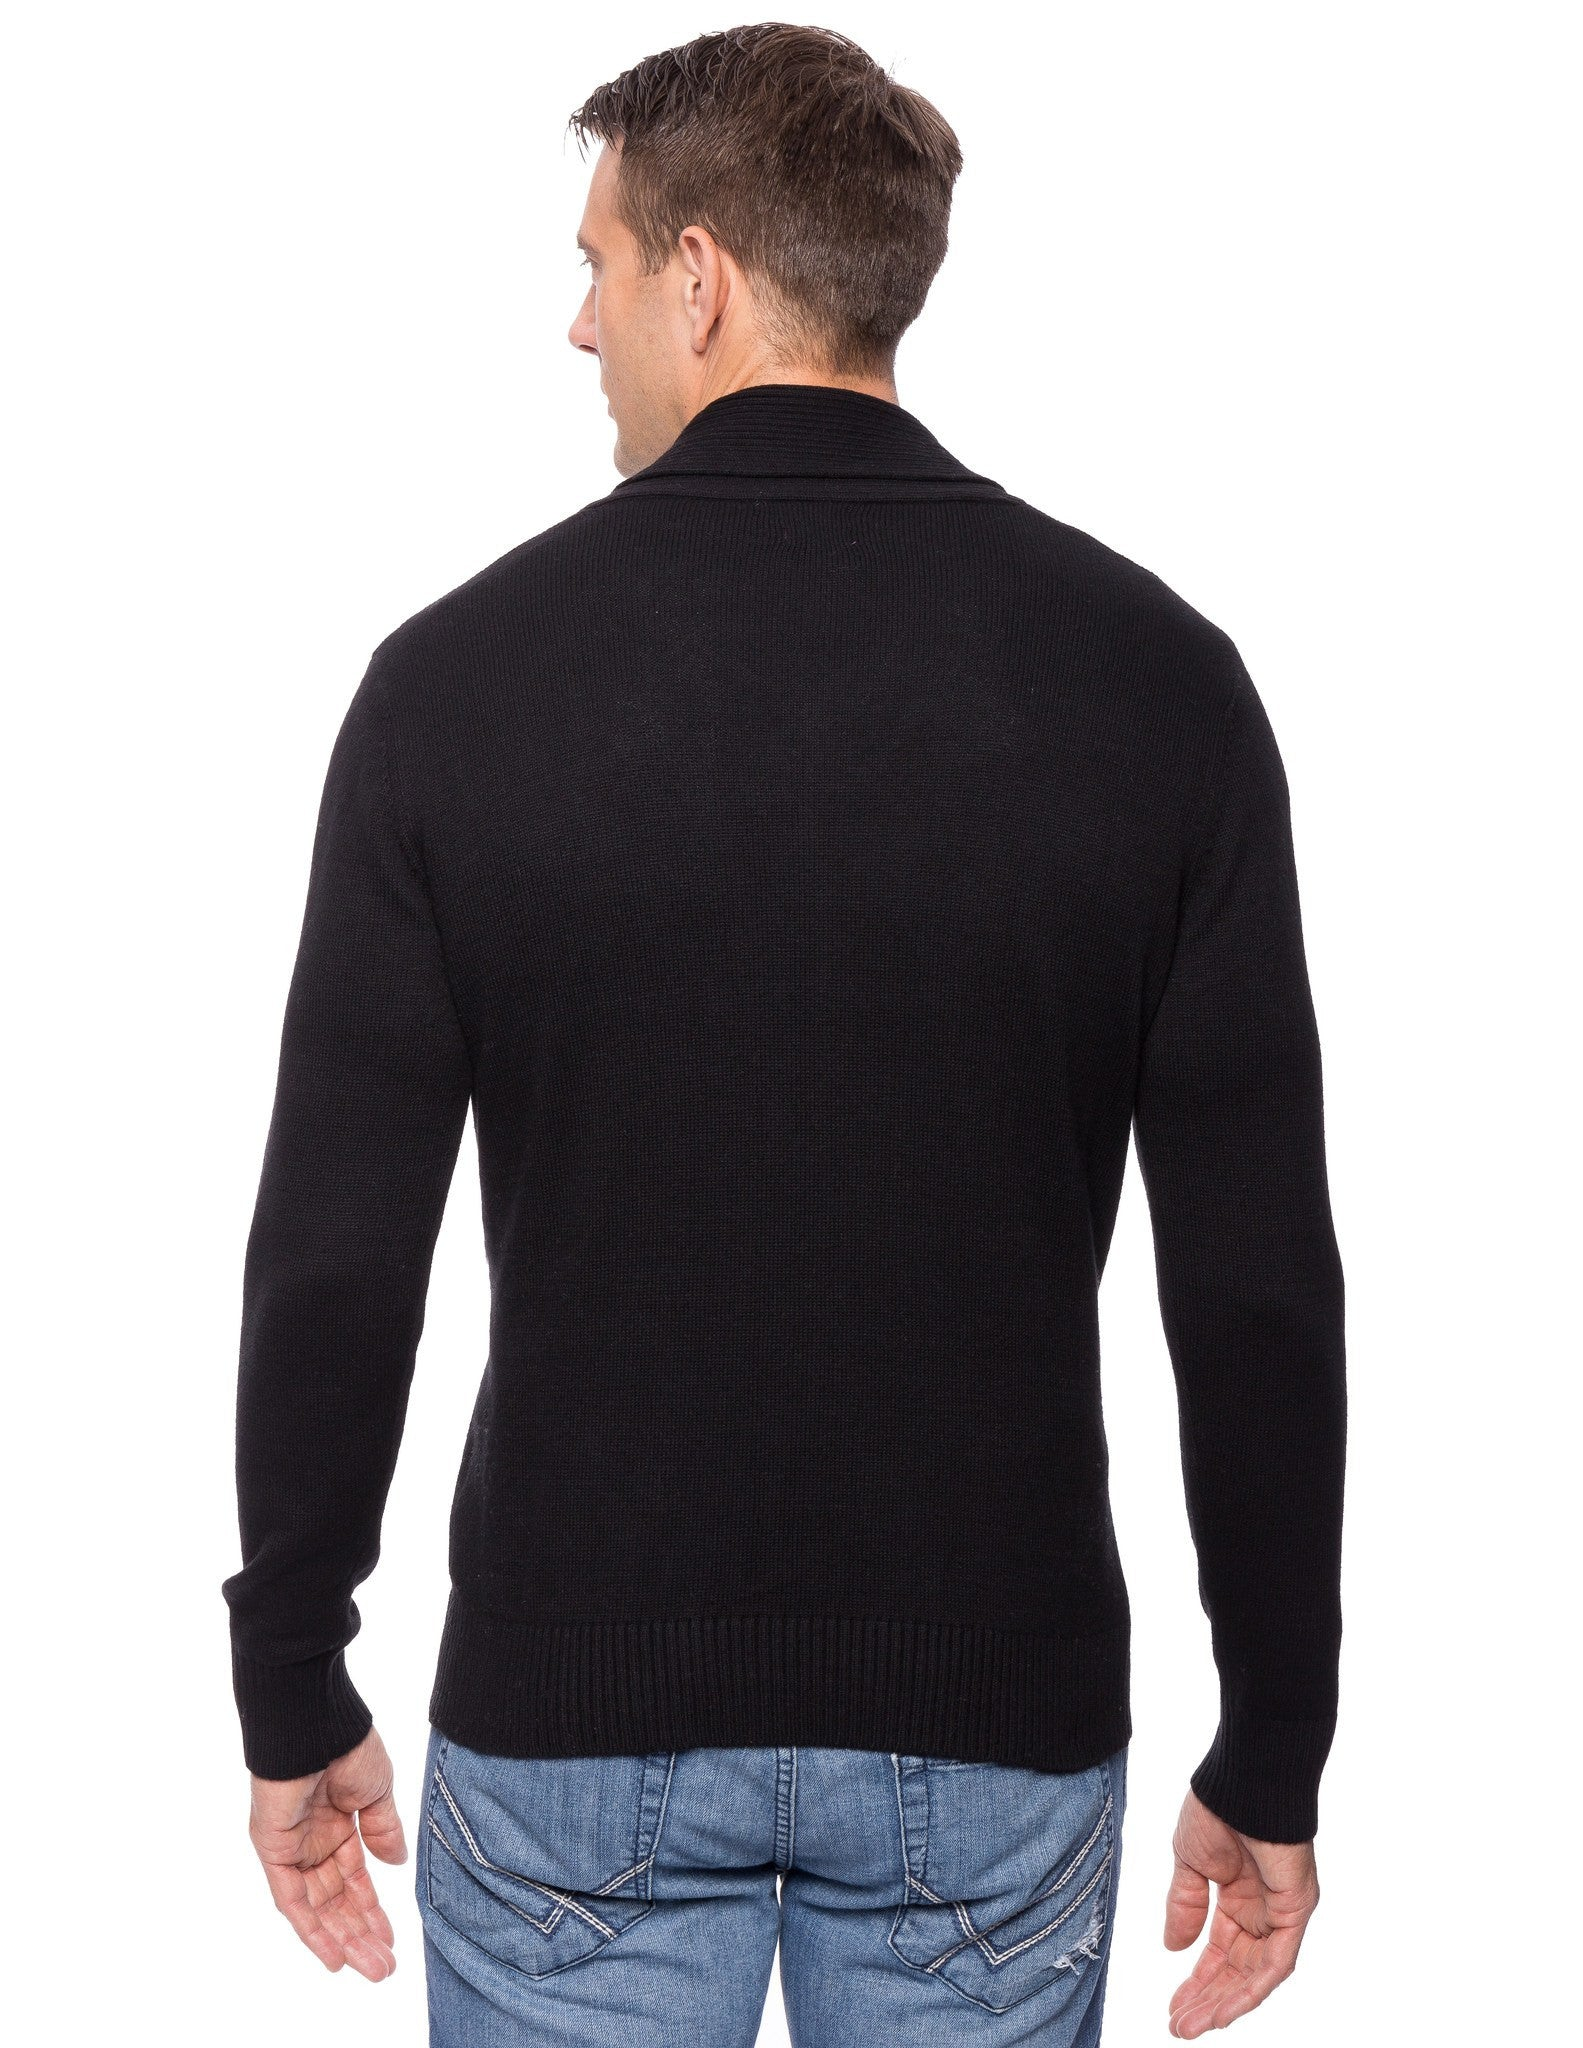 Tocco Reale Men's Cashmere Blend Shawl Collar Pullover Sweater - Black